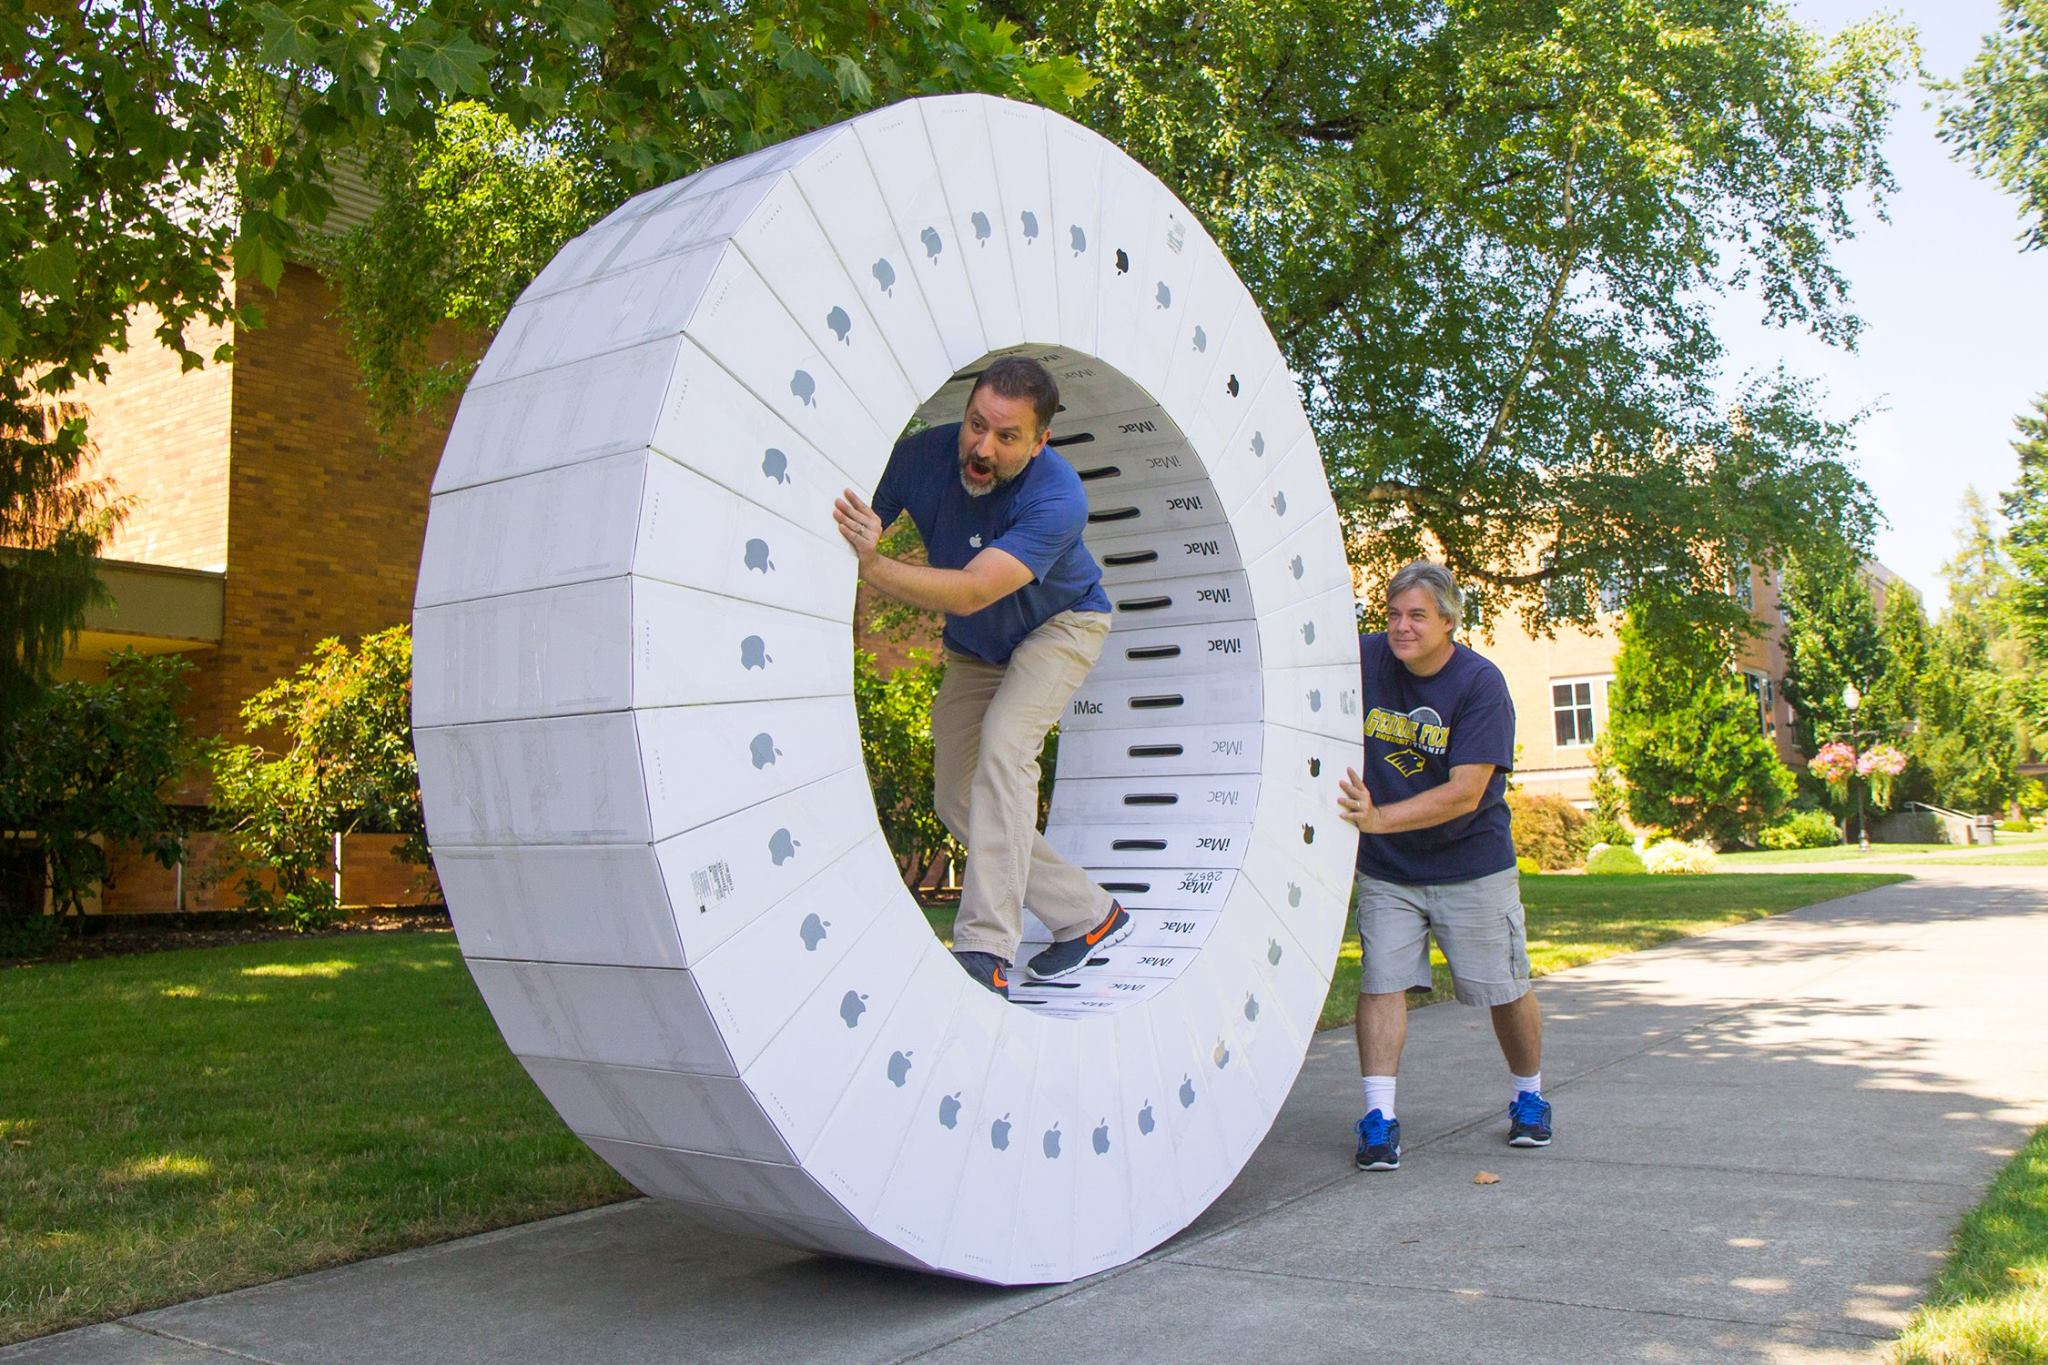 my school just got a ton of new imacs and this is what they did with the boxes